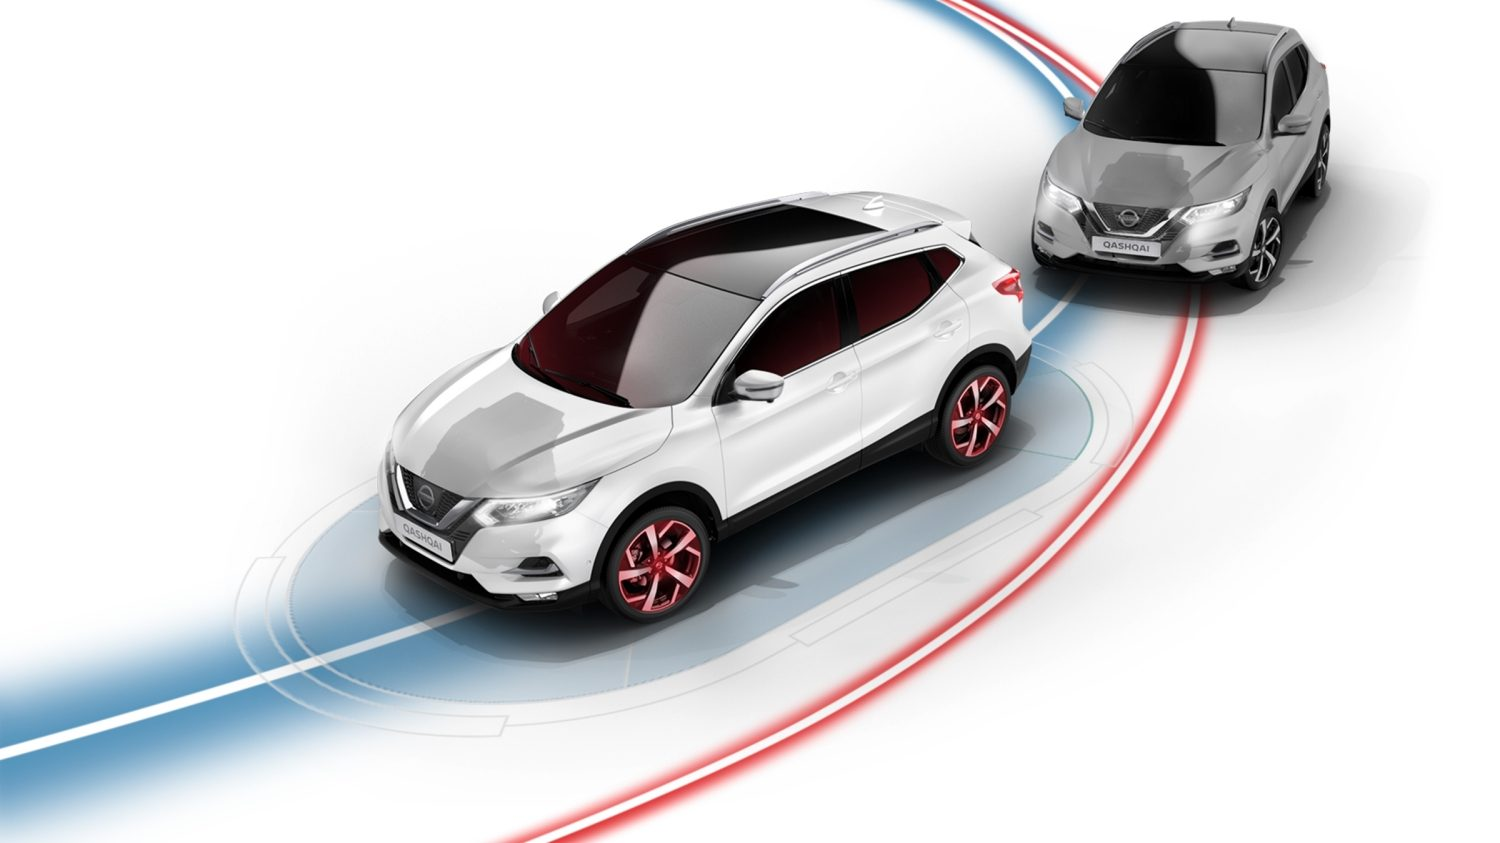 Nissan QASHQAI Intelligent spårkontroll, illustration